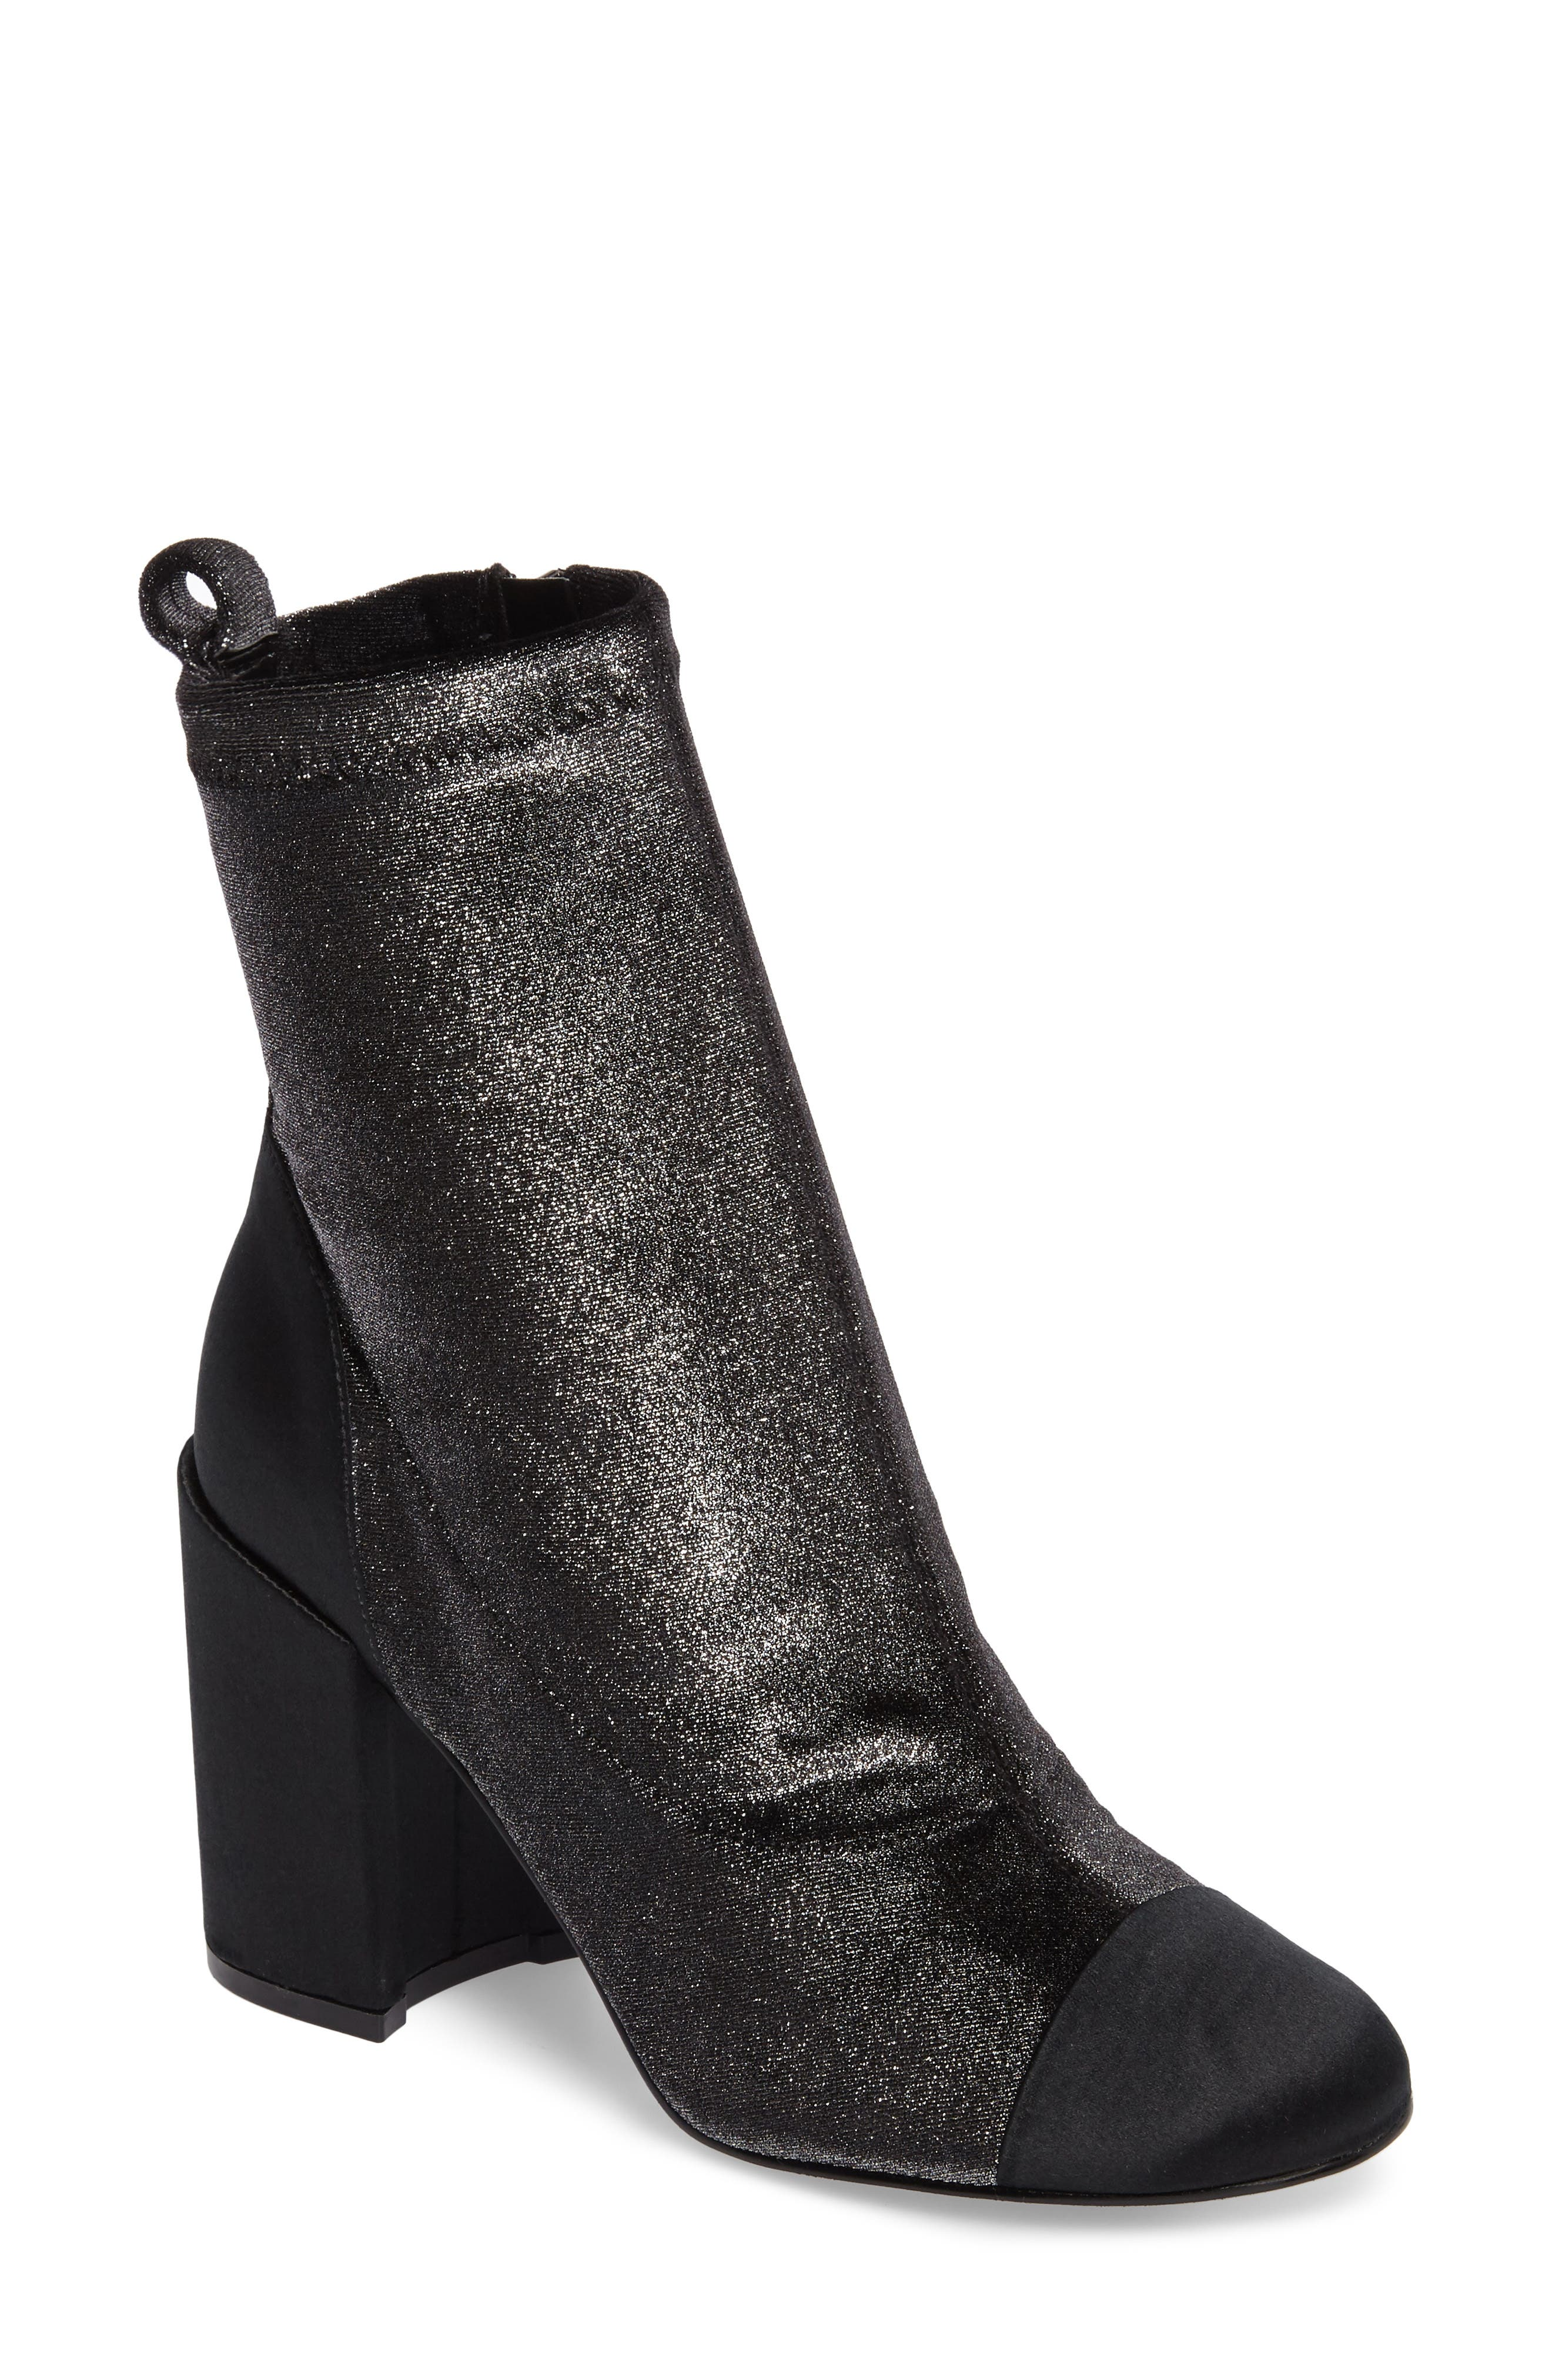 Alternate Image 1 Selected - Marc Fisher LTD Tache Bootie (Women)